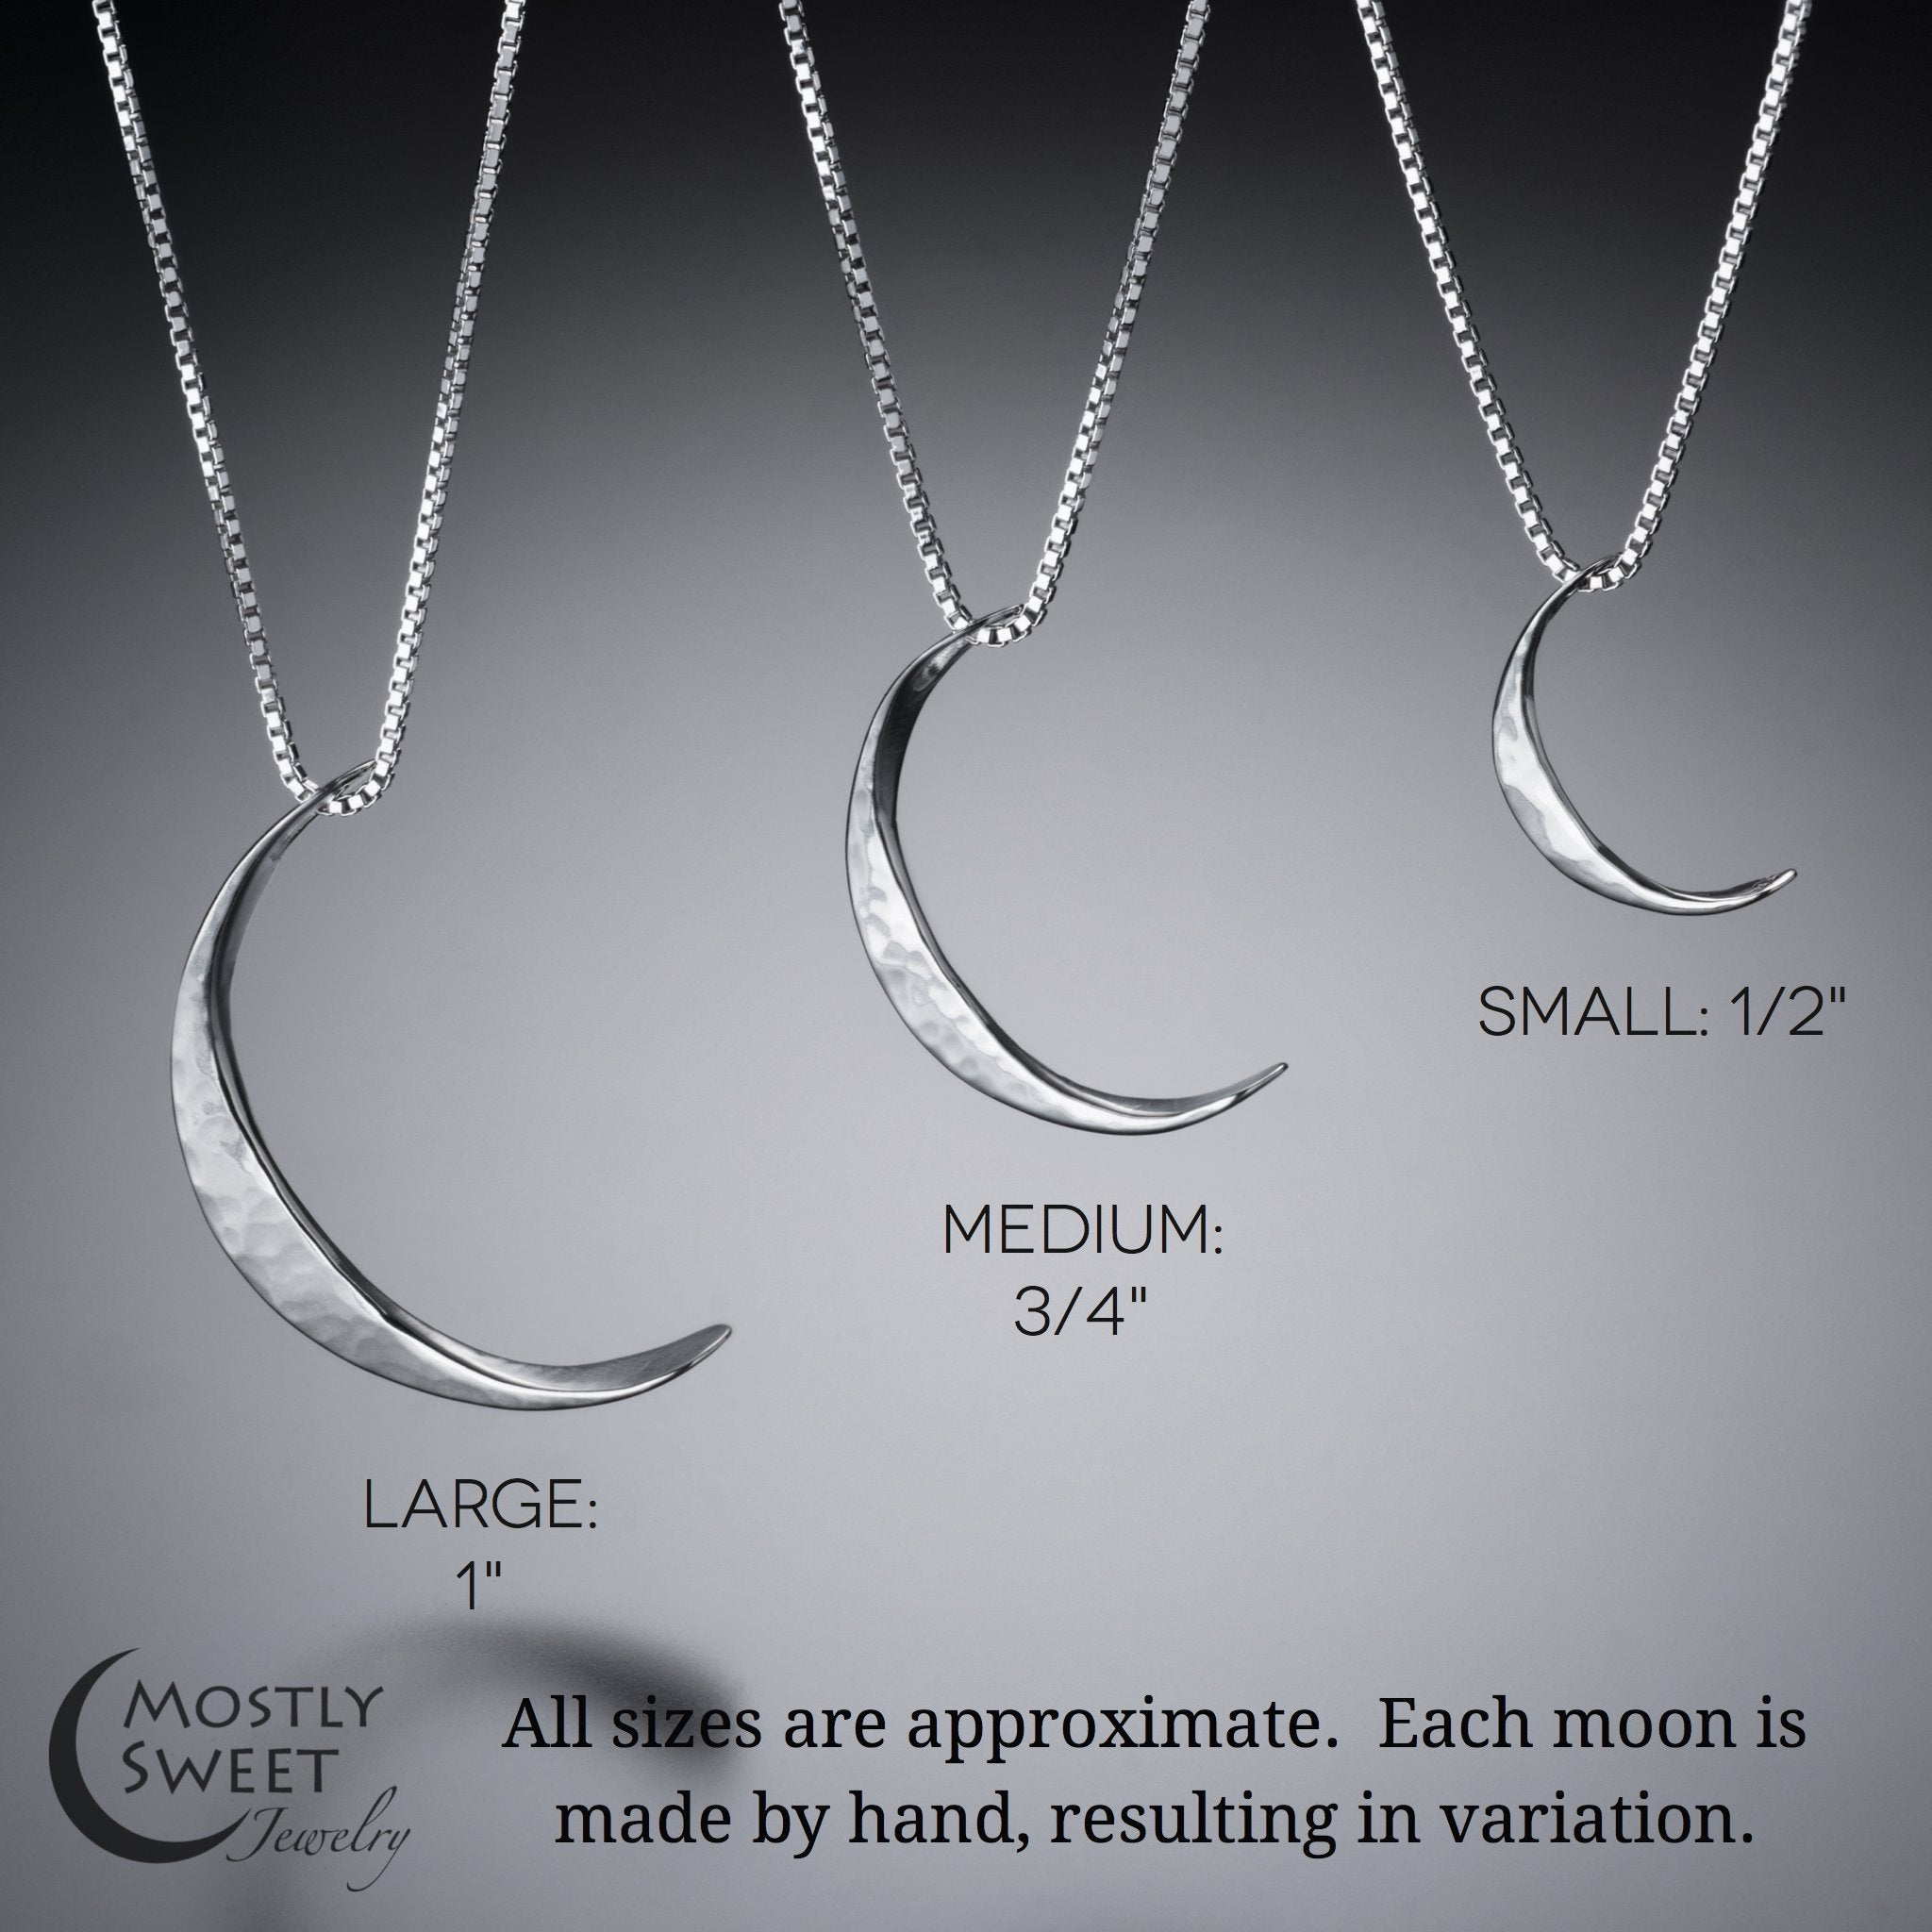 Silver Crescent Moon Size Comparison